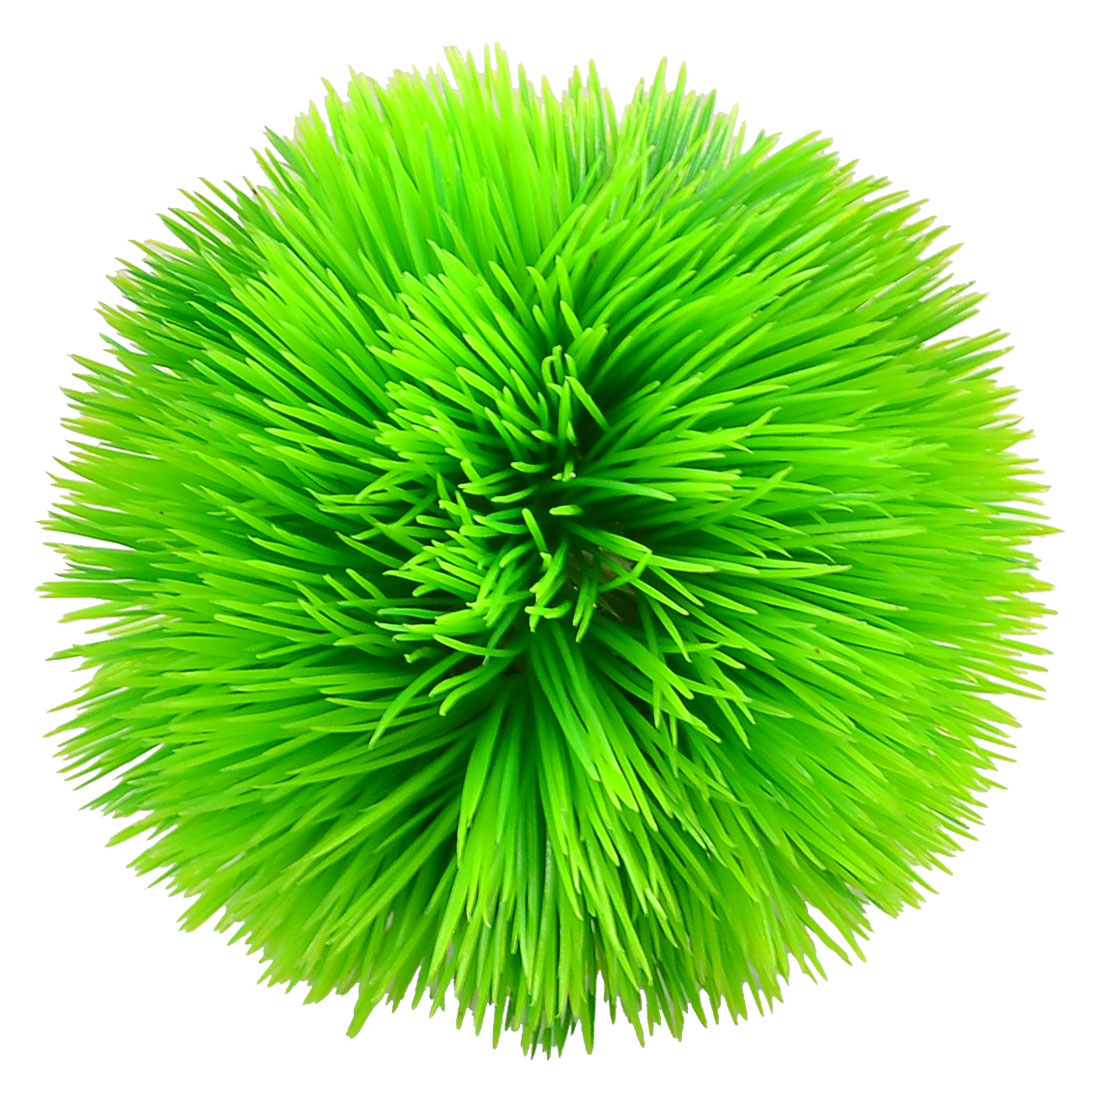 "3.9"" High Green Round Shaped Emulational Water Grass Ornament for Aquarium"